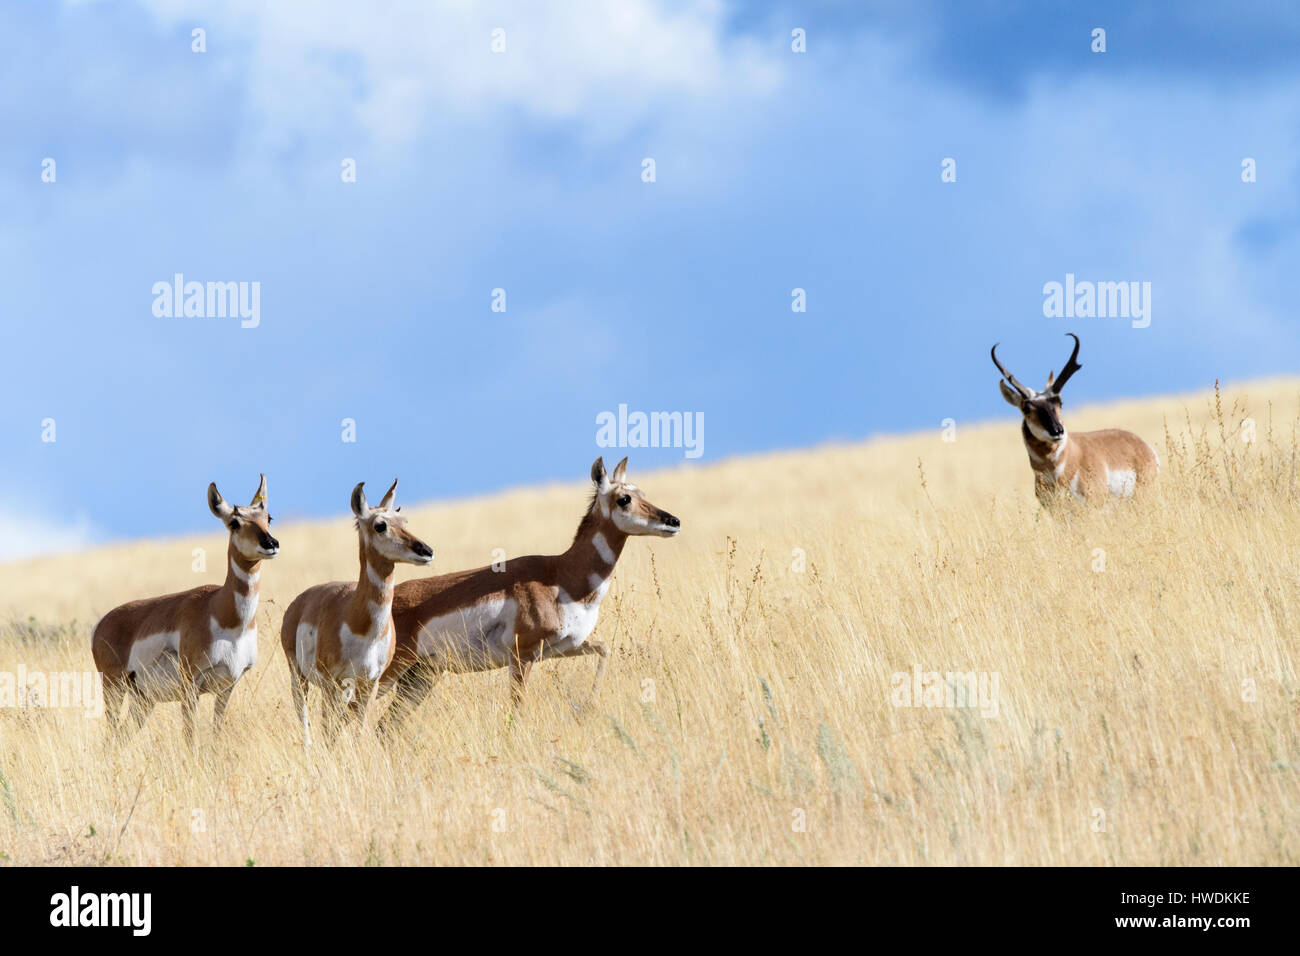 A pronghorn buck (Antilocapra americana) watches over a band of does during thr Autumn mating rut, North America - Stock Image